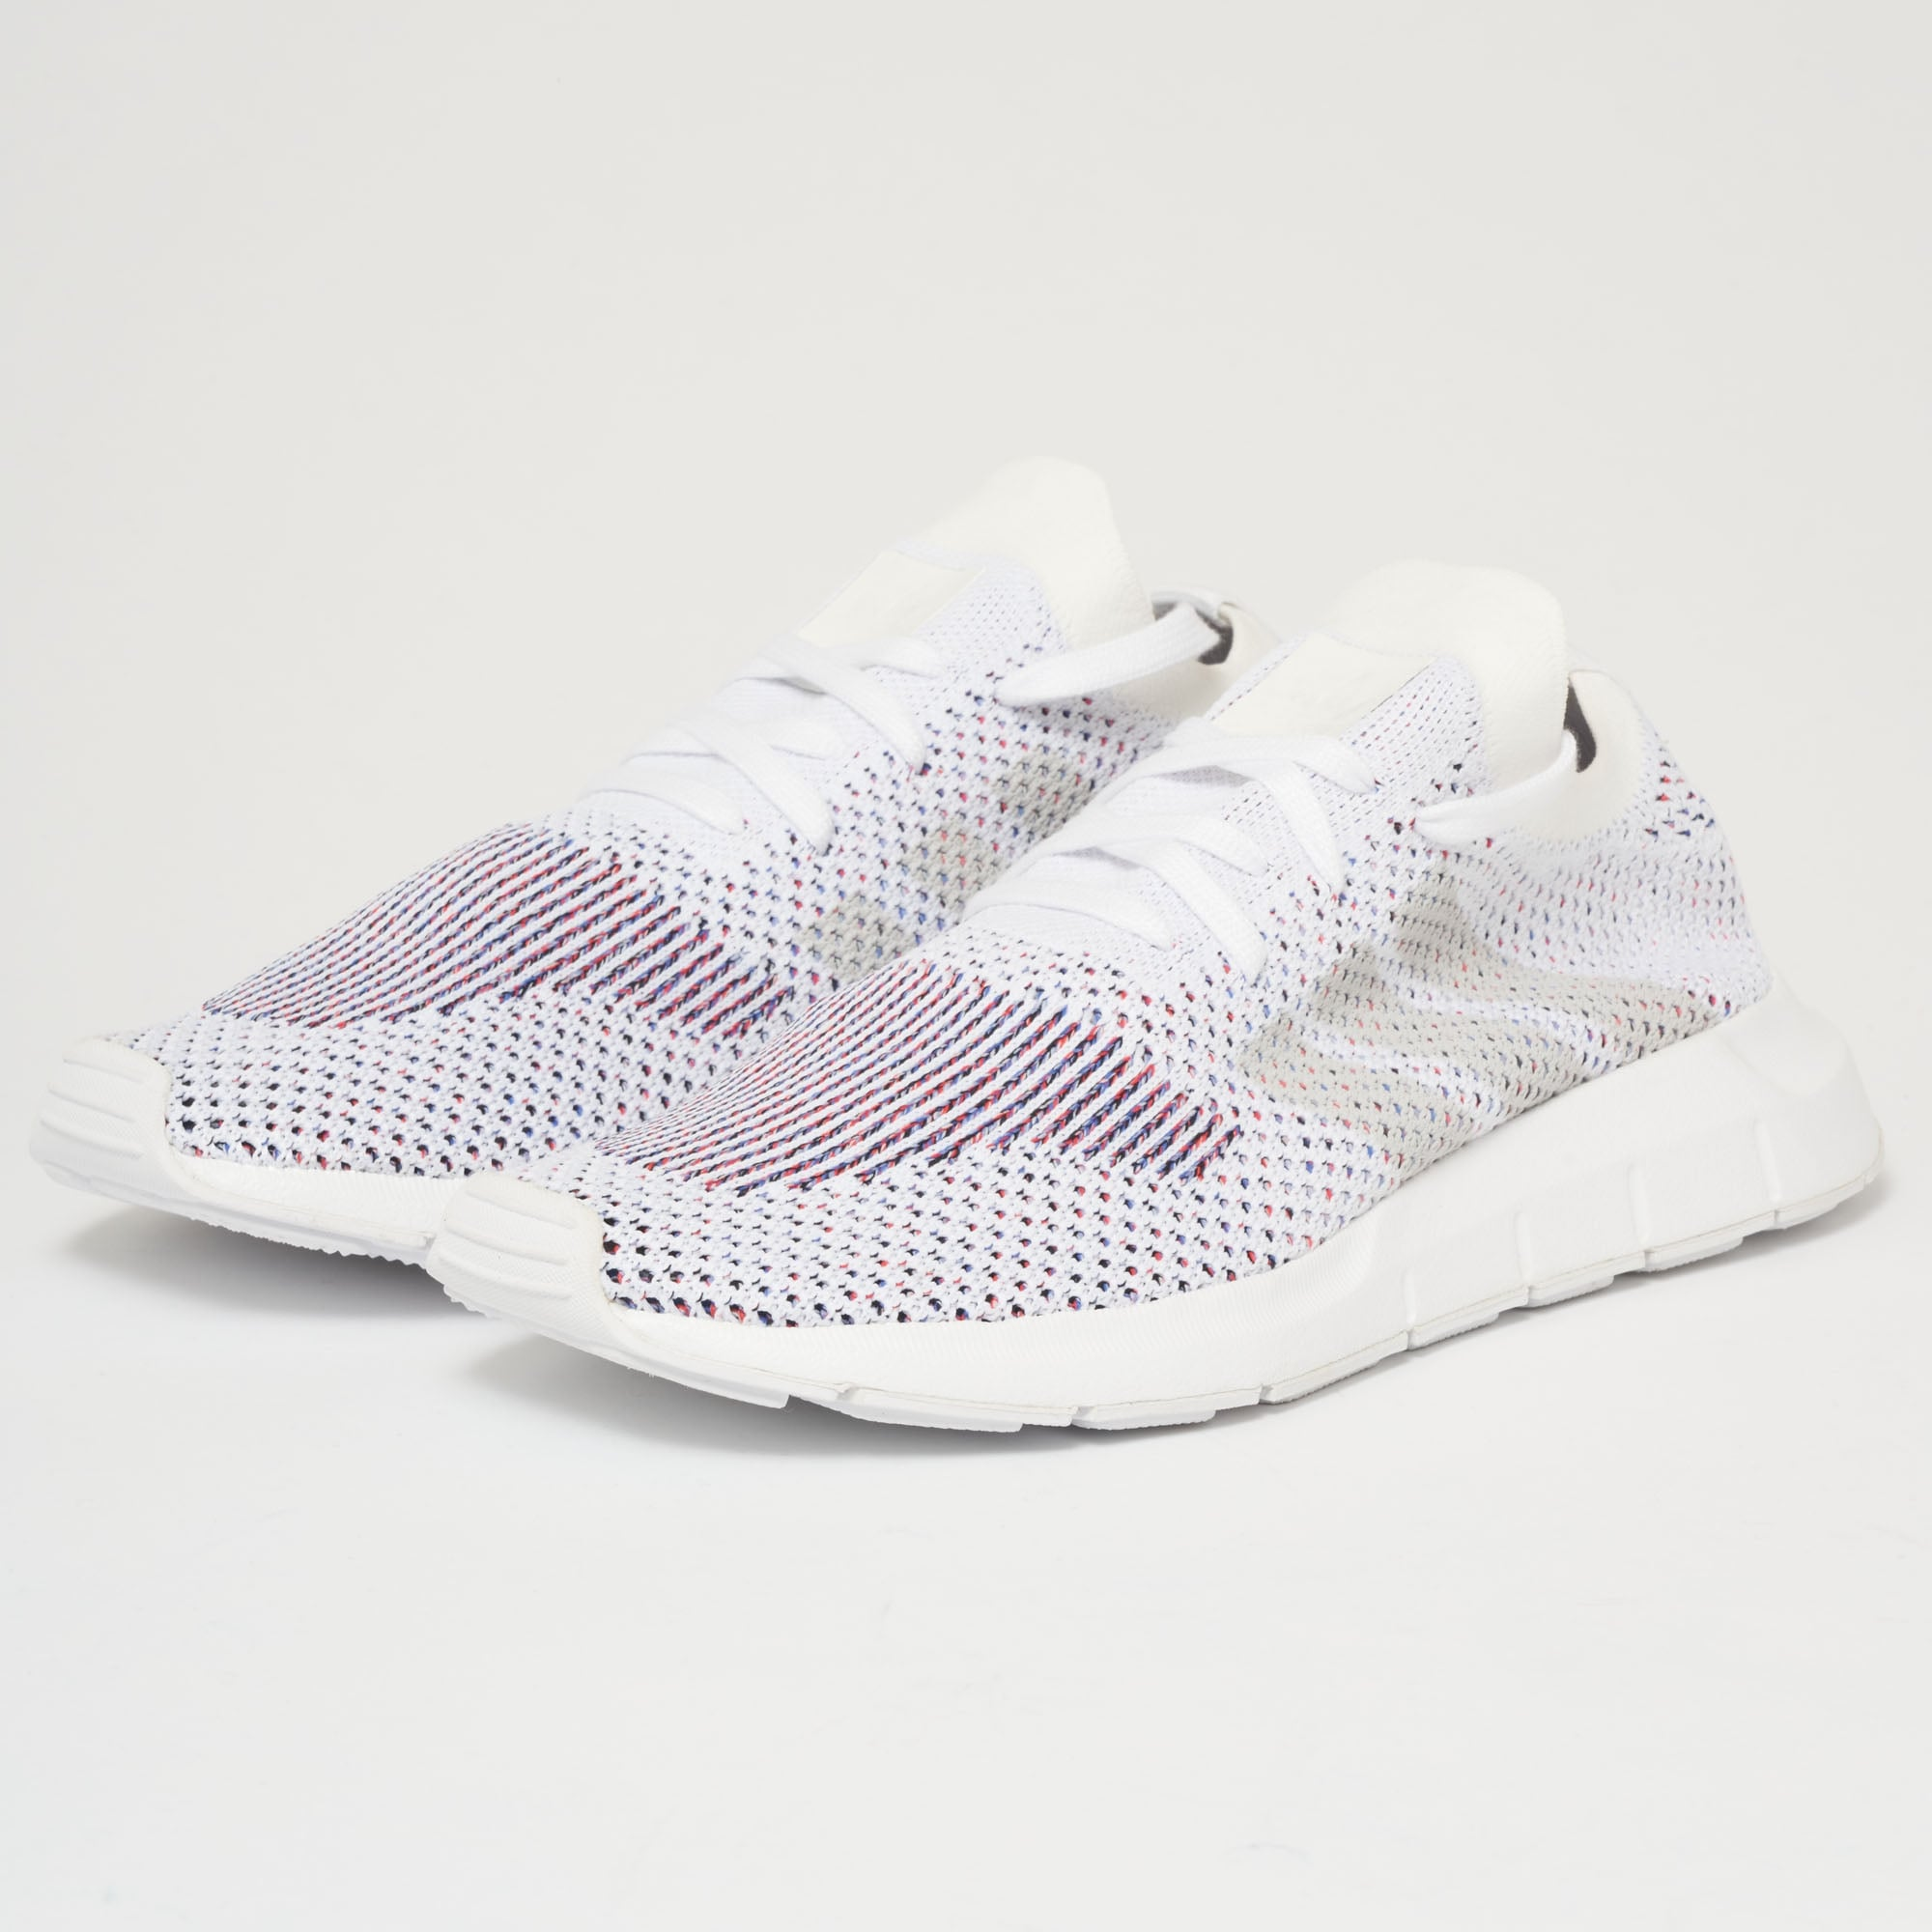 dfb8af25f Adidas Originals Swift Run PK (FTW White   Grey One) at Dandy Fellow